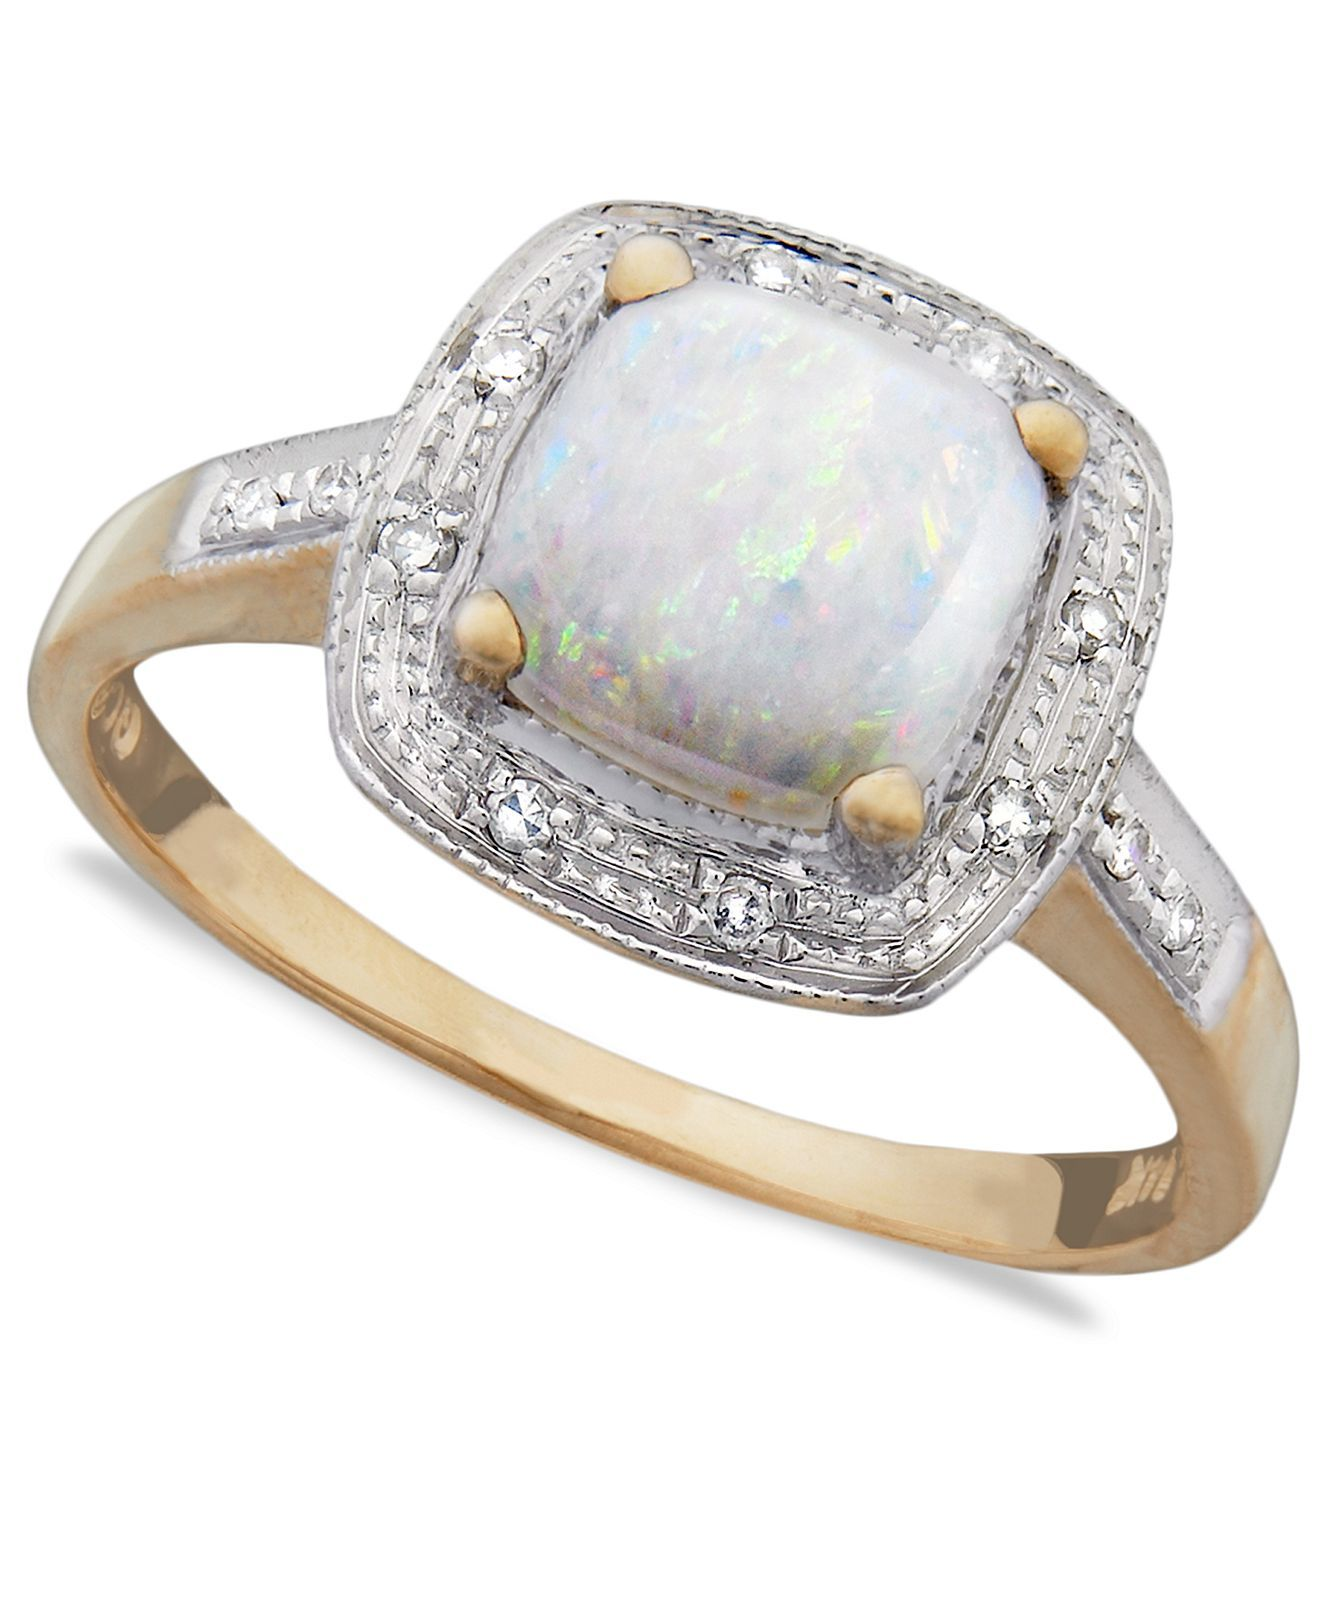 10k Gold Ring, Opal and Diamond Accent